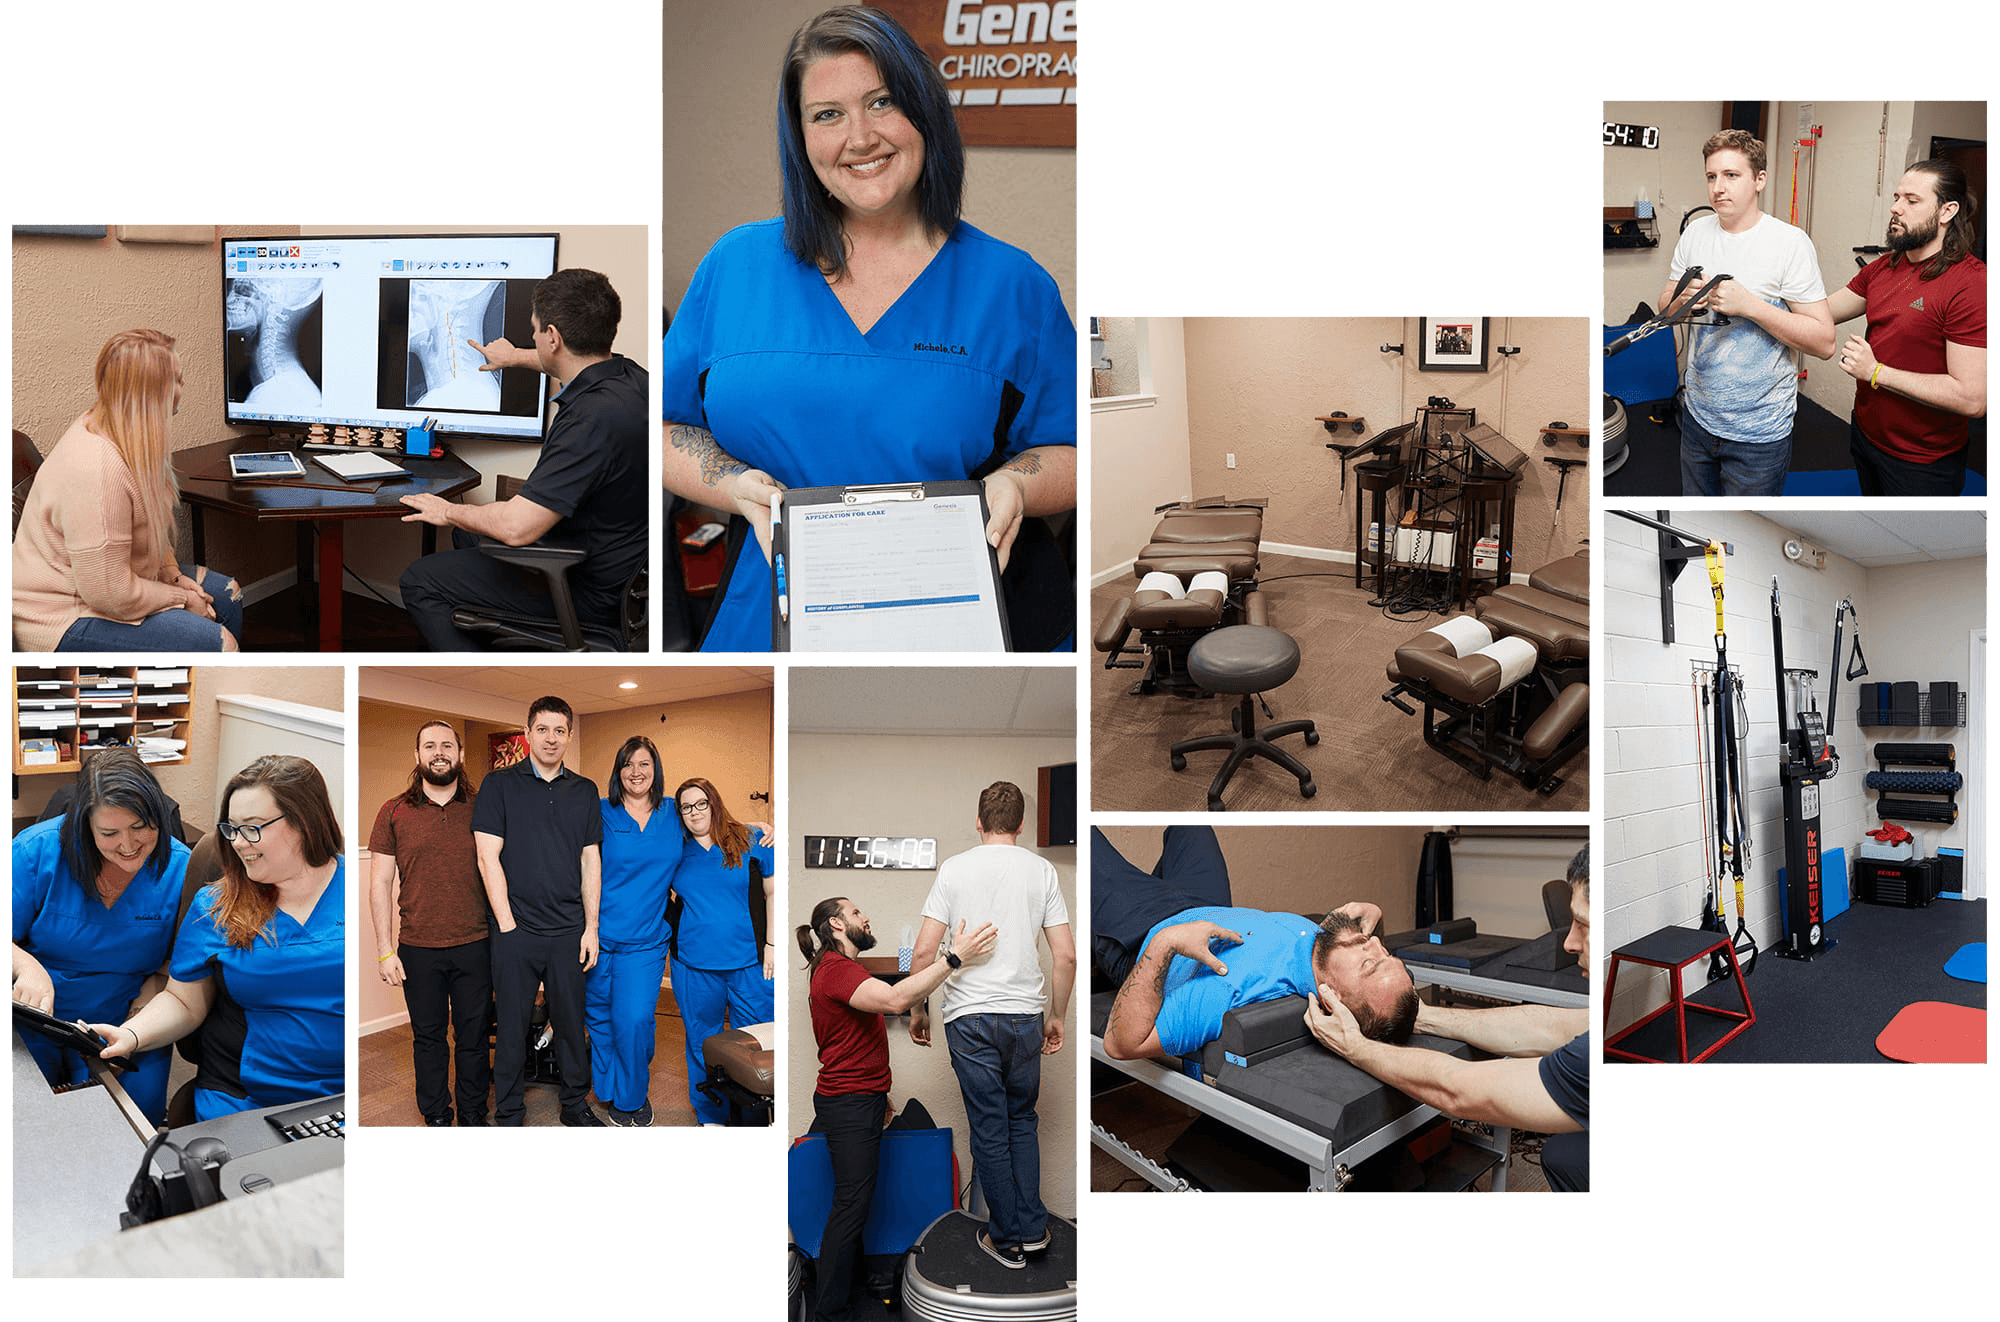 Collage of our Horsham and Warrington Chiropractic team with patients and caring for people in our office